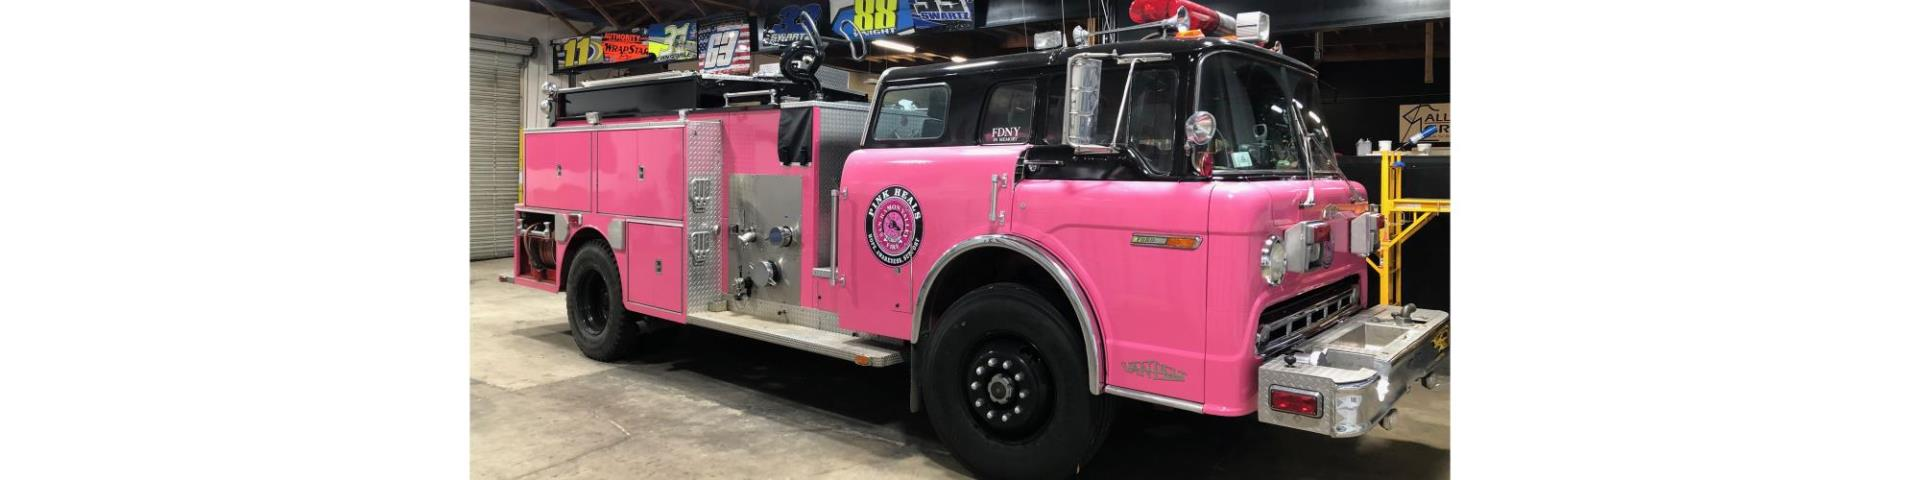 Pink Heals Pink Fire Engine